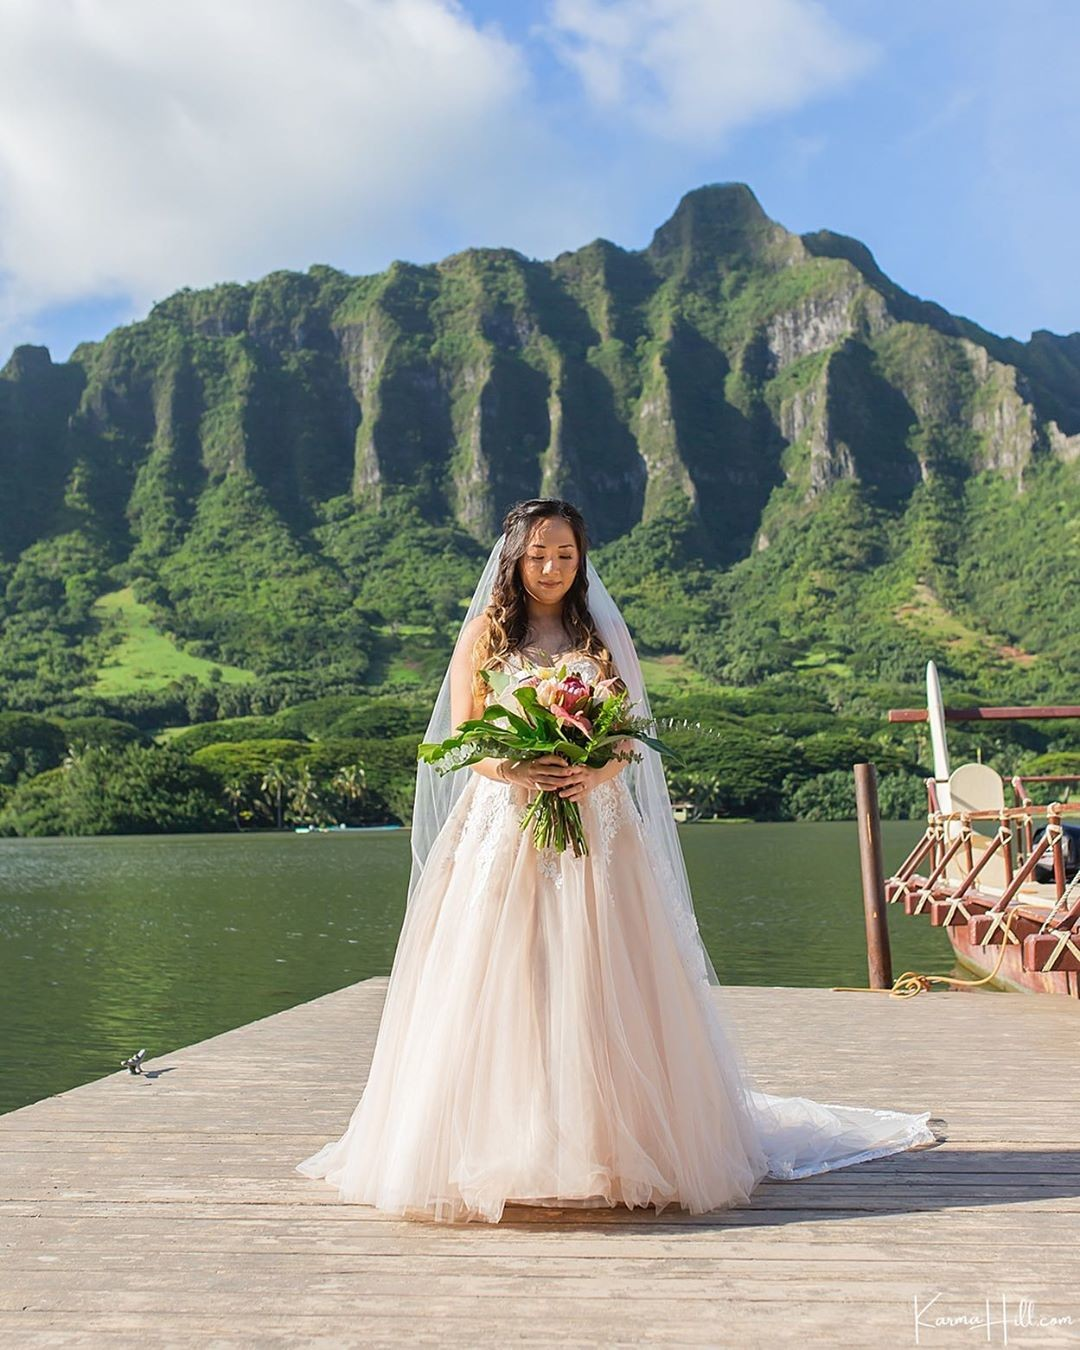 With this majestic mountain range behind her, Katelyn was an absolute vision as she made her entrance at Kualoa Secret Island.